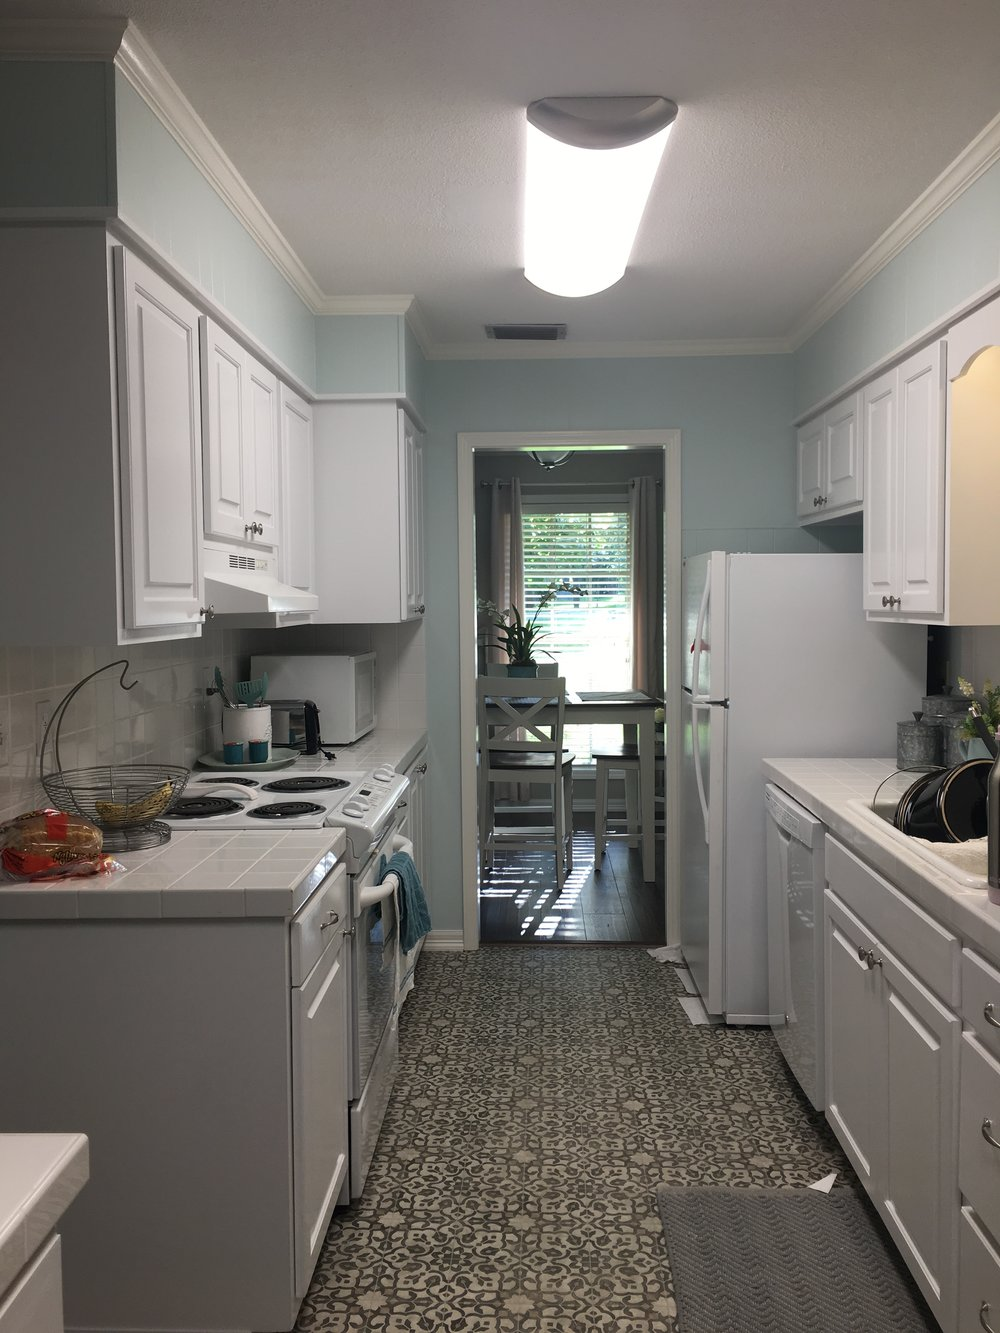 Kaitlyn Smith Kitchen - After